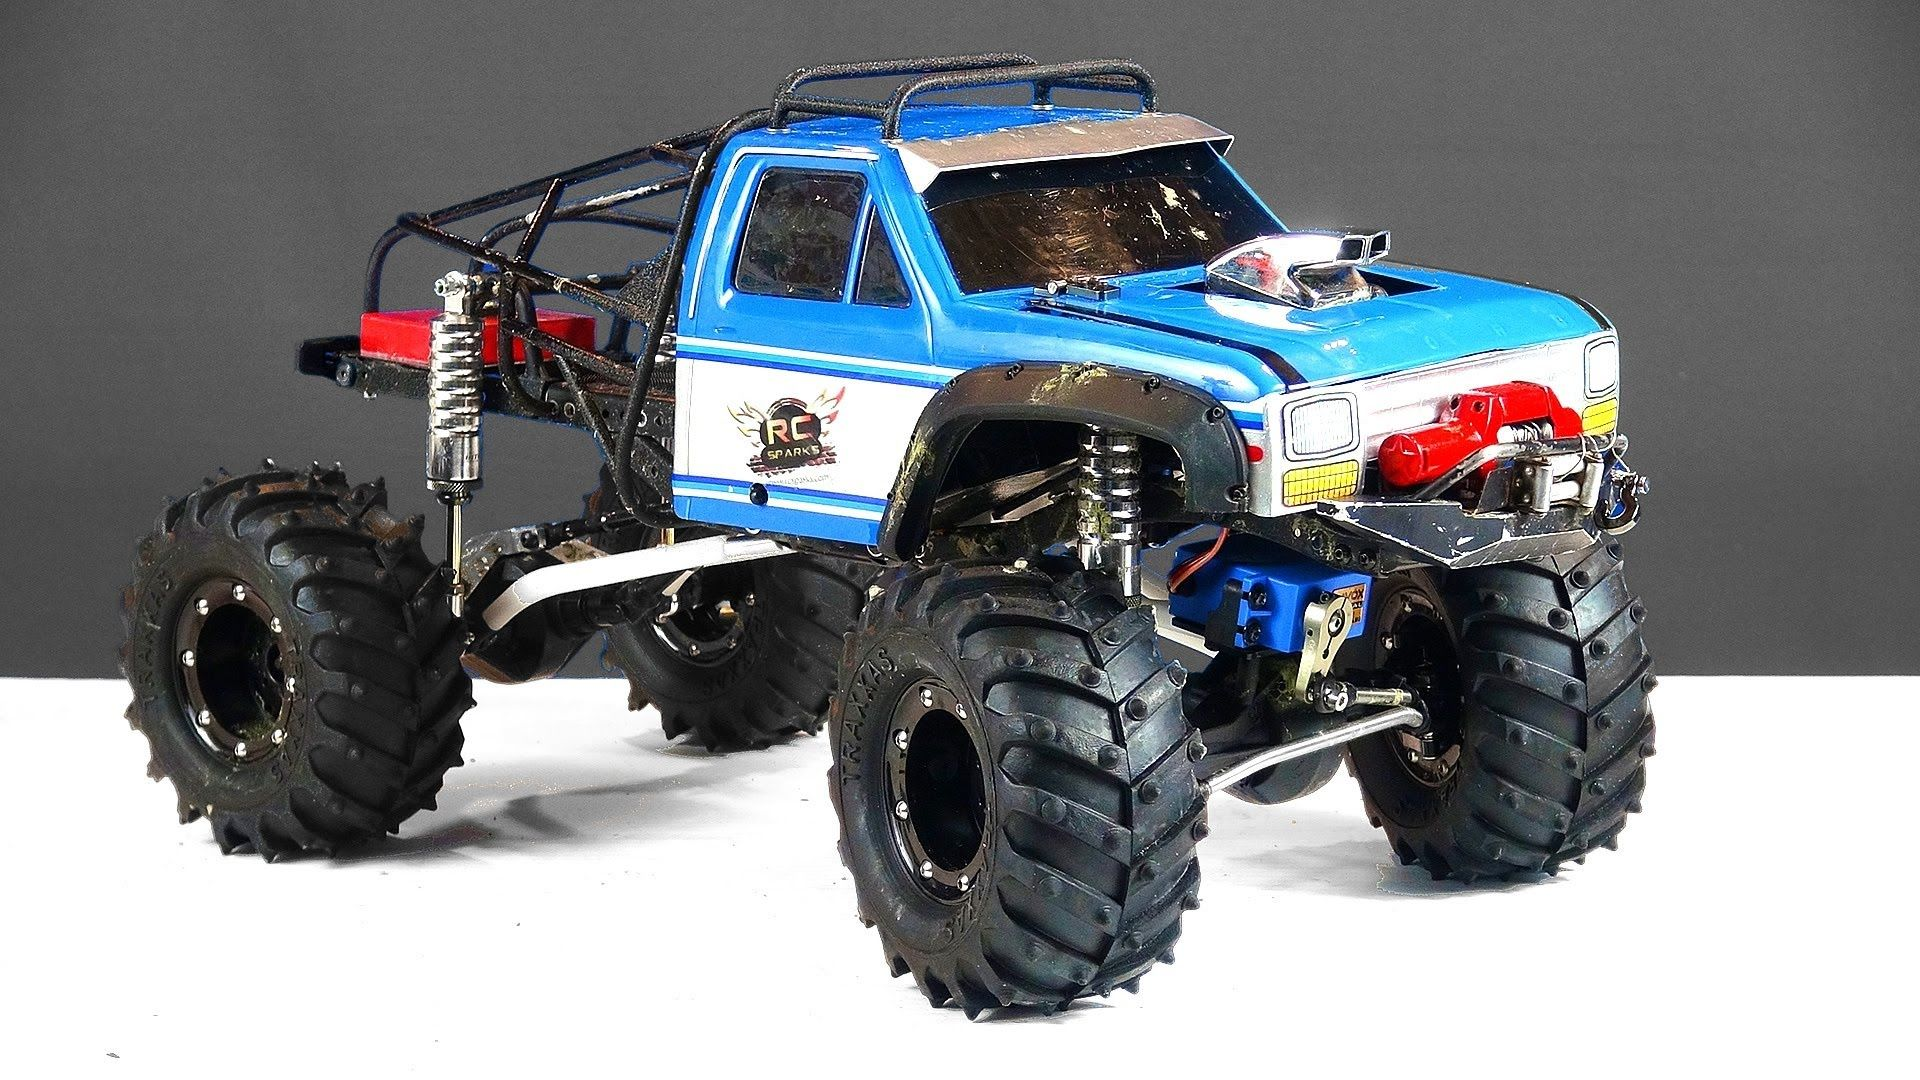 Pin by JPTFGSMOOTH 28 on Scratch Built RC Everything Pinterest